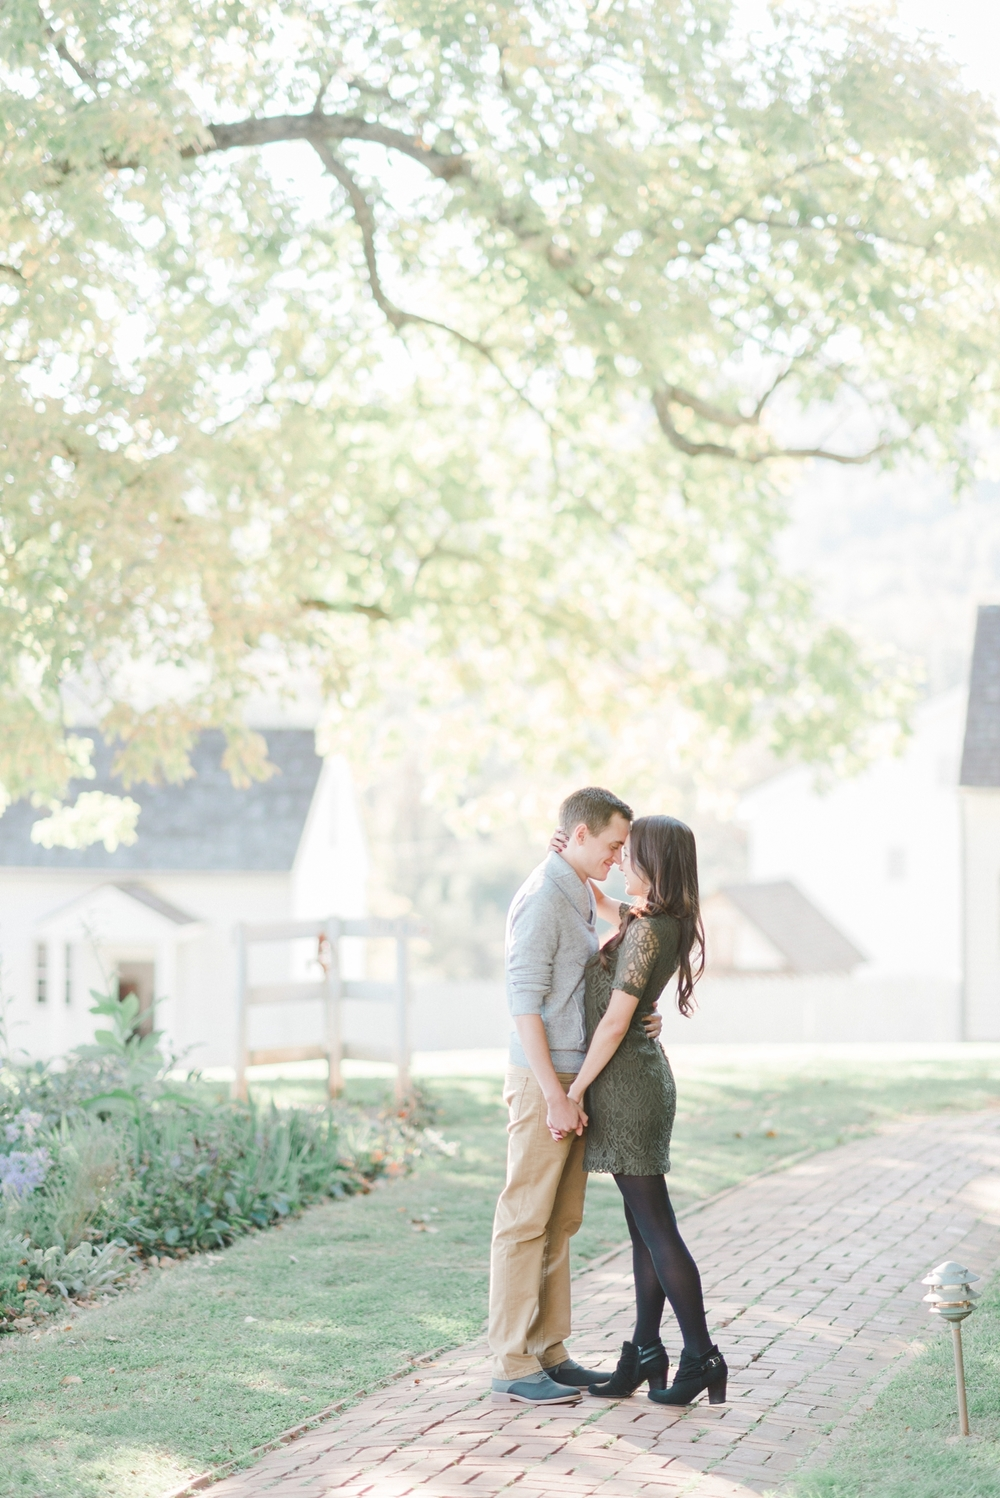 charlottesville_engagement_ashlawn_highland_0003.jpg